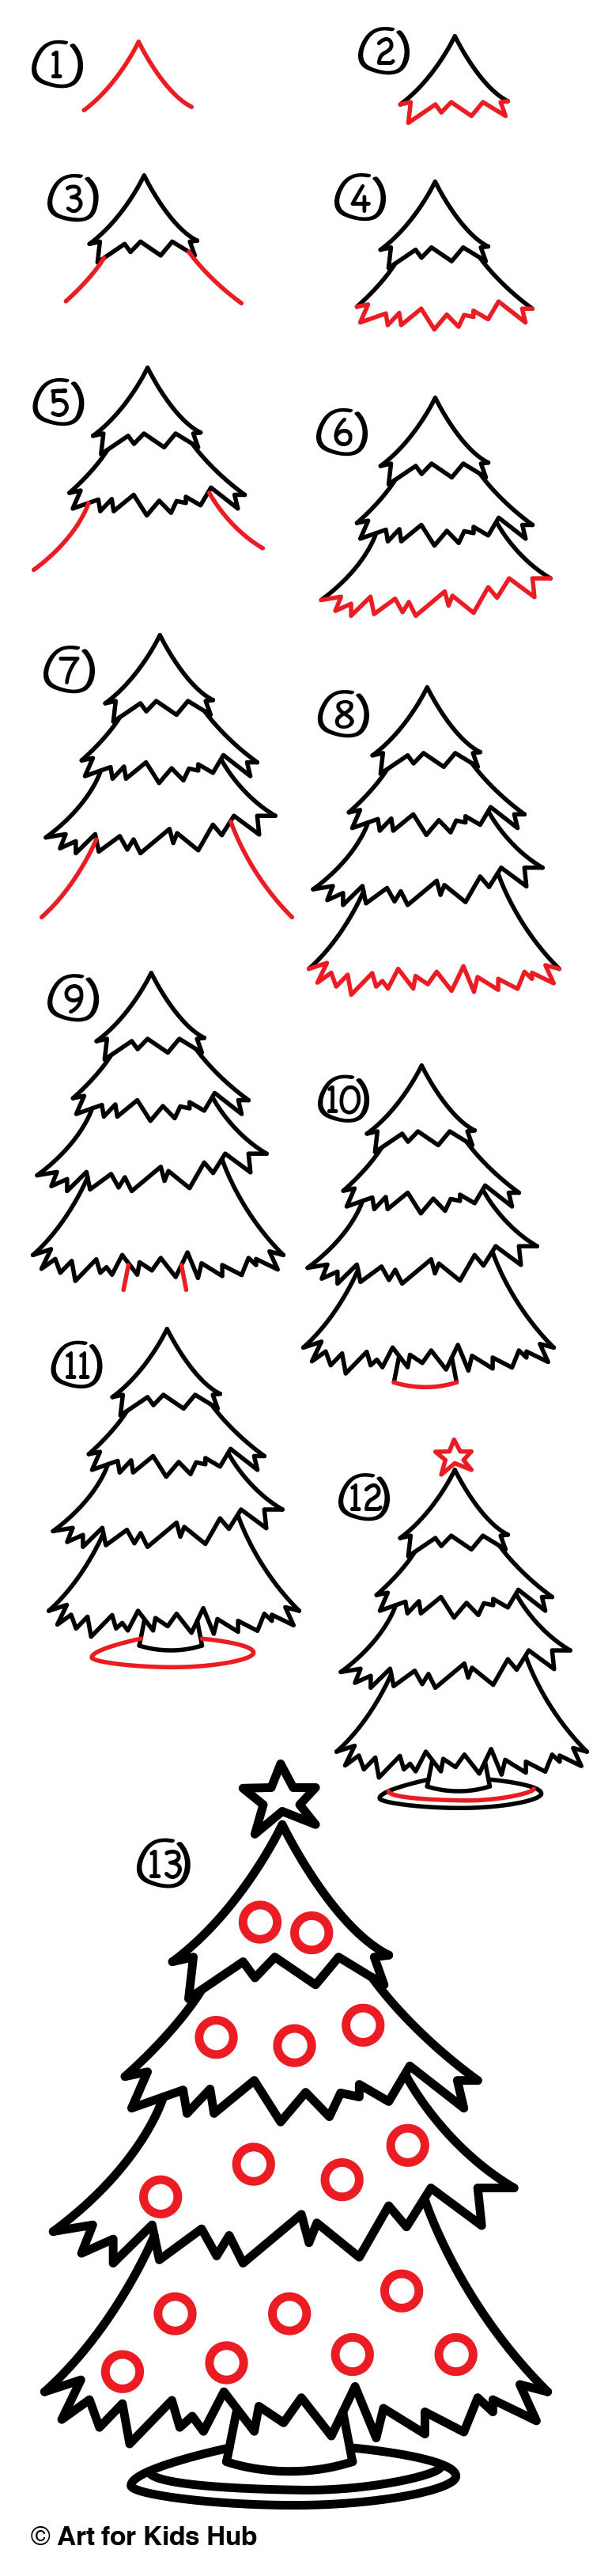 How To Draw A Christmas Tree - Art For Kids Hub